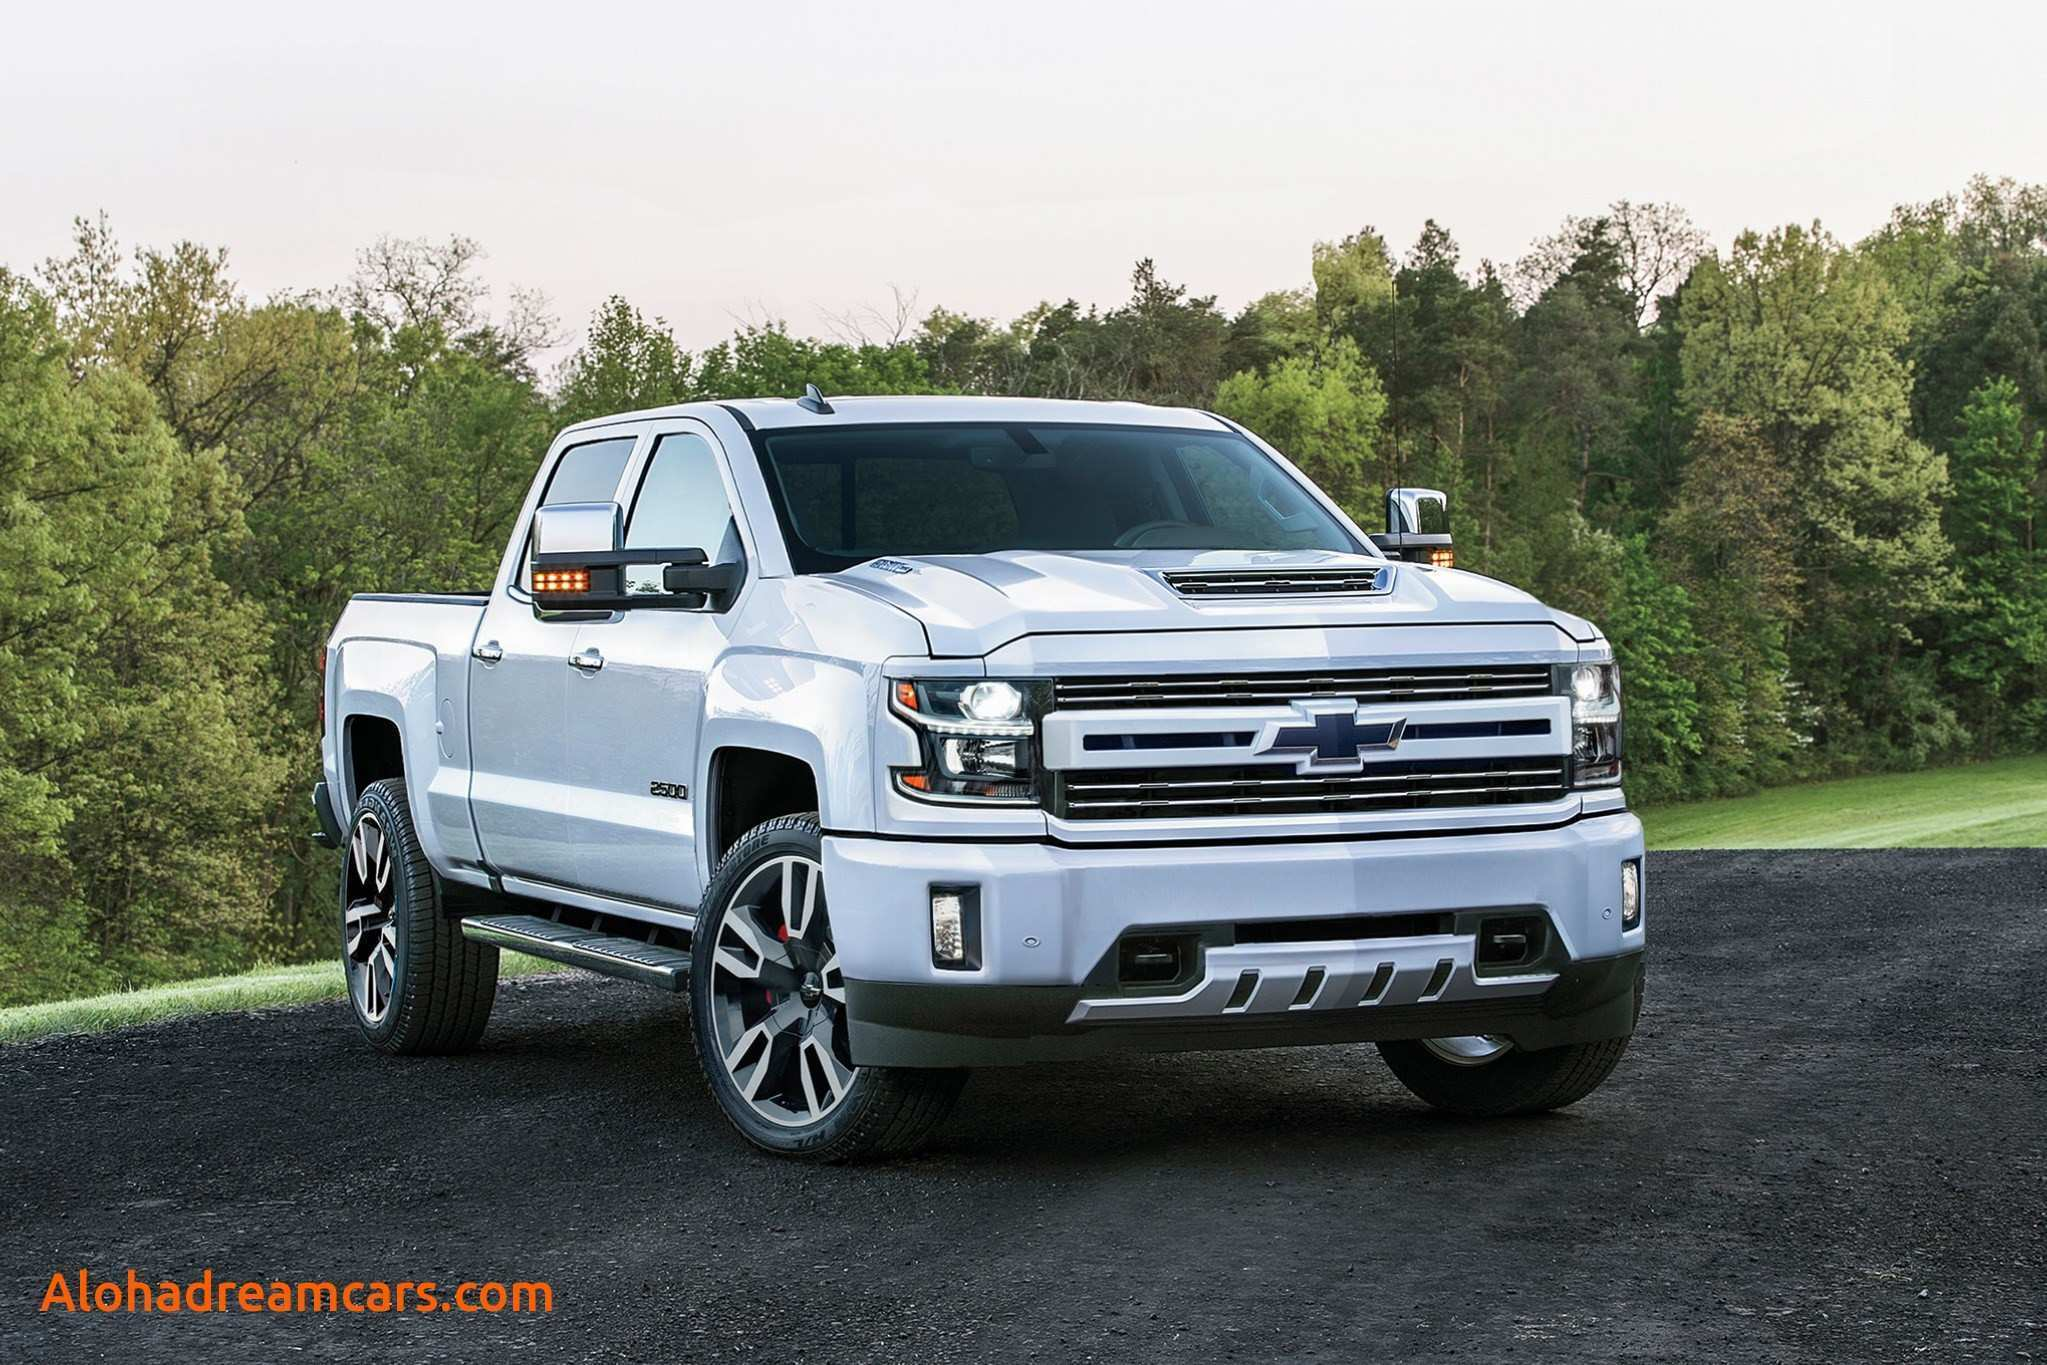 91 The Best 2019 Chevy Avalanche New Concept